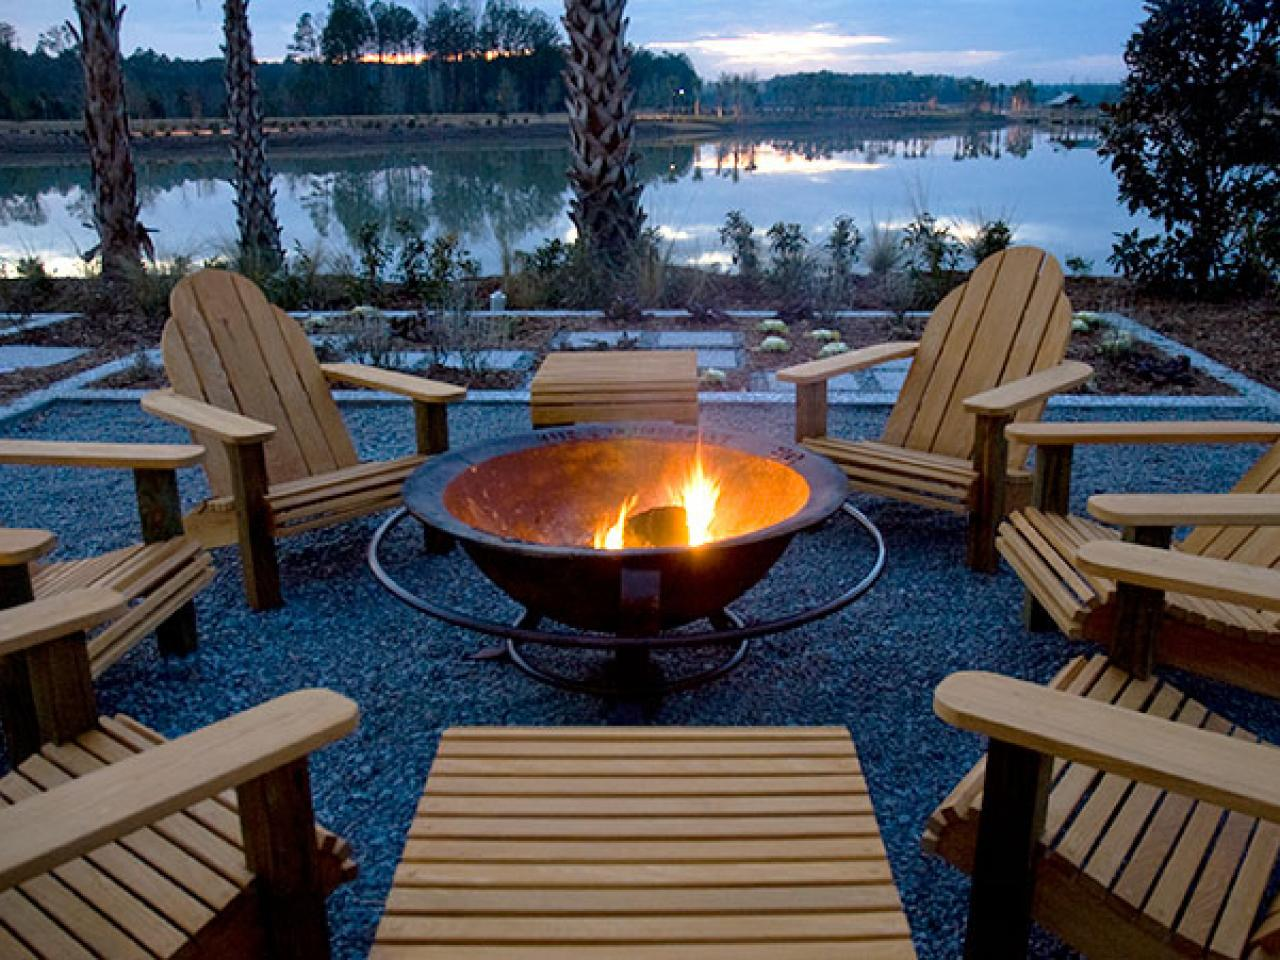 50 Best Outdoor Fire Pit Design Ideas for 2019 on Outdoor Fire Pit Ideas id=80875